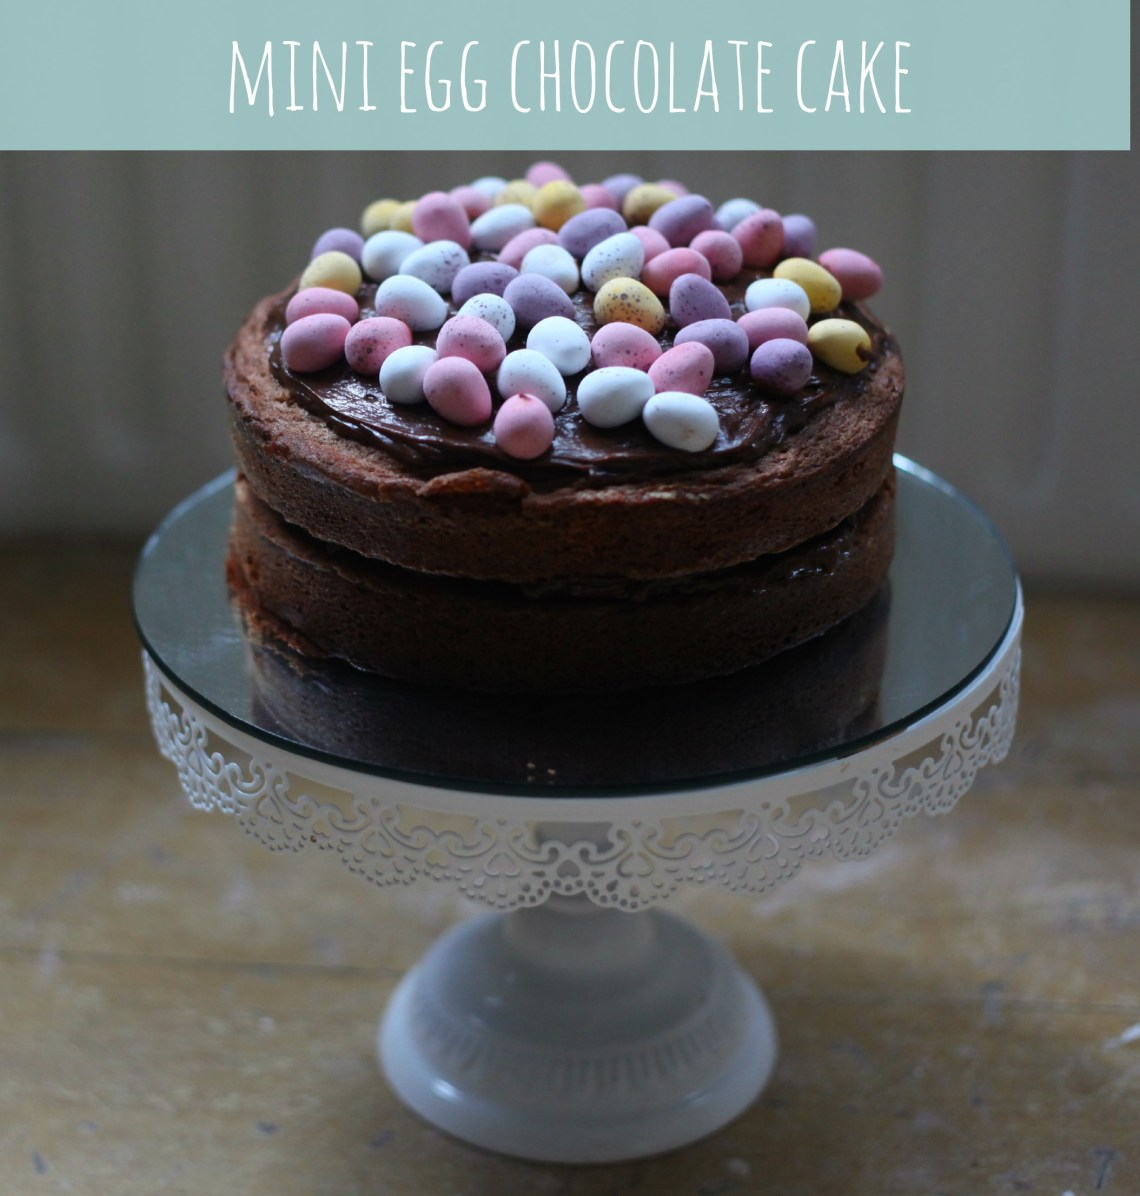 Mini Egg Chocolate Cake